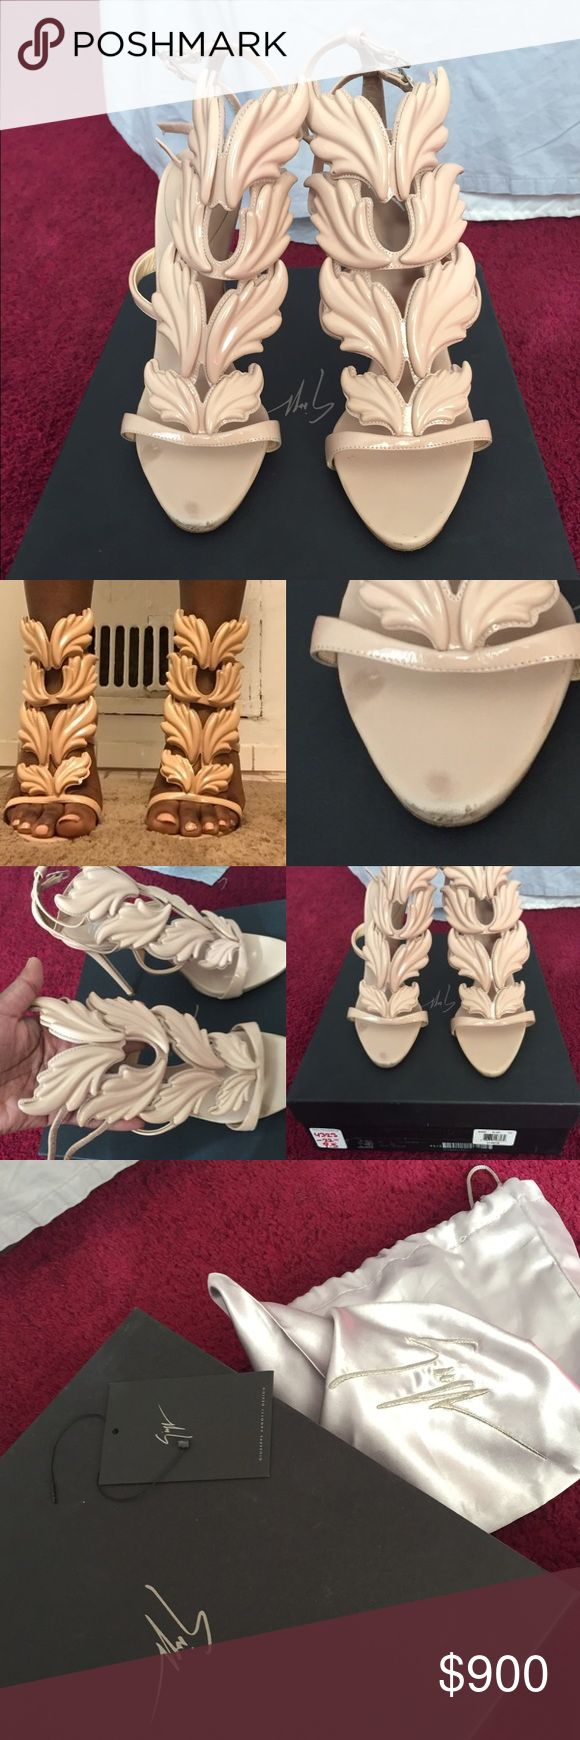 destin coach outlet apas  Giuseppe Zanotti Sandals 100% Authentic Giuseppe Zanotti Cruel Summer  Sandals purchased at Saks Fifth Ave